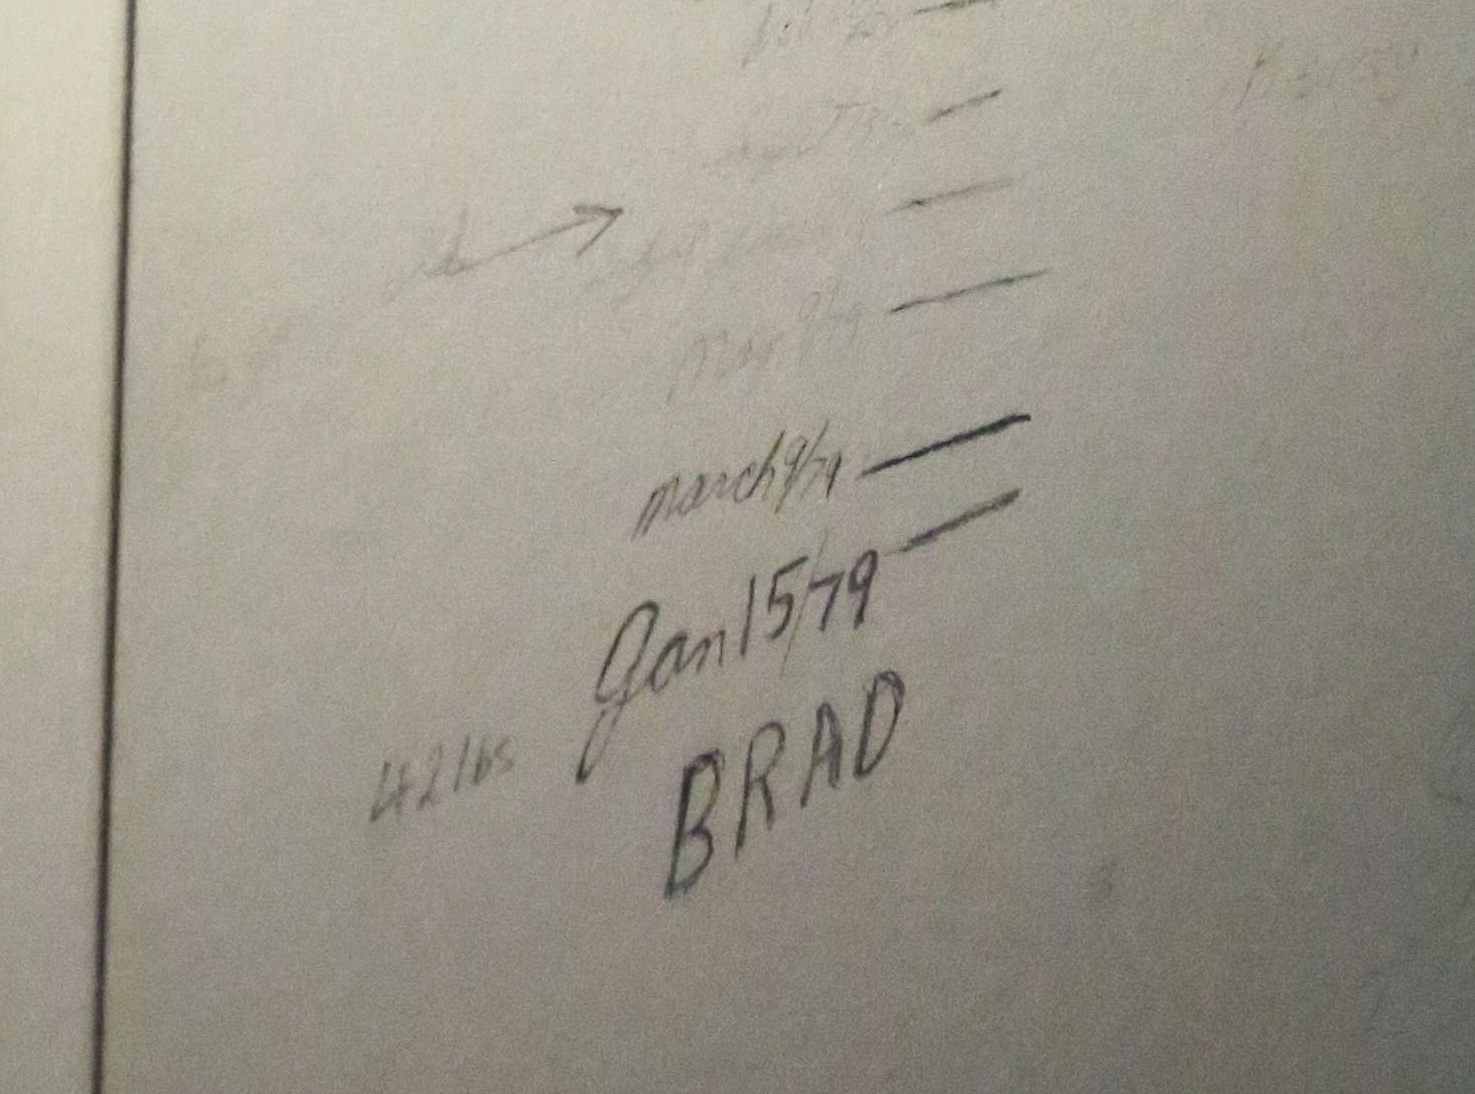 Growth chart penciled inside the upstairs closet